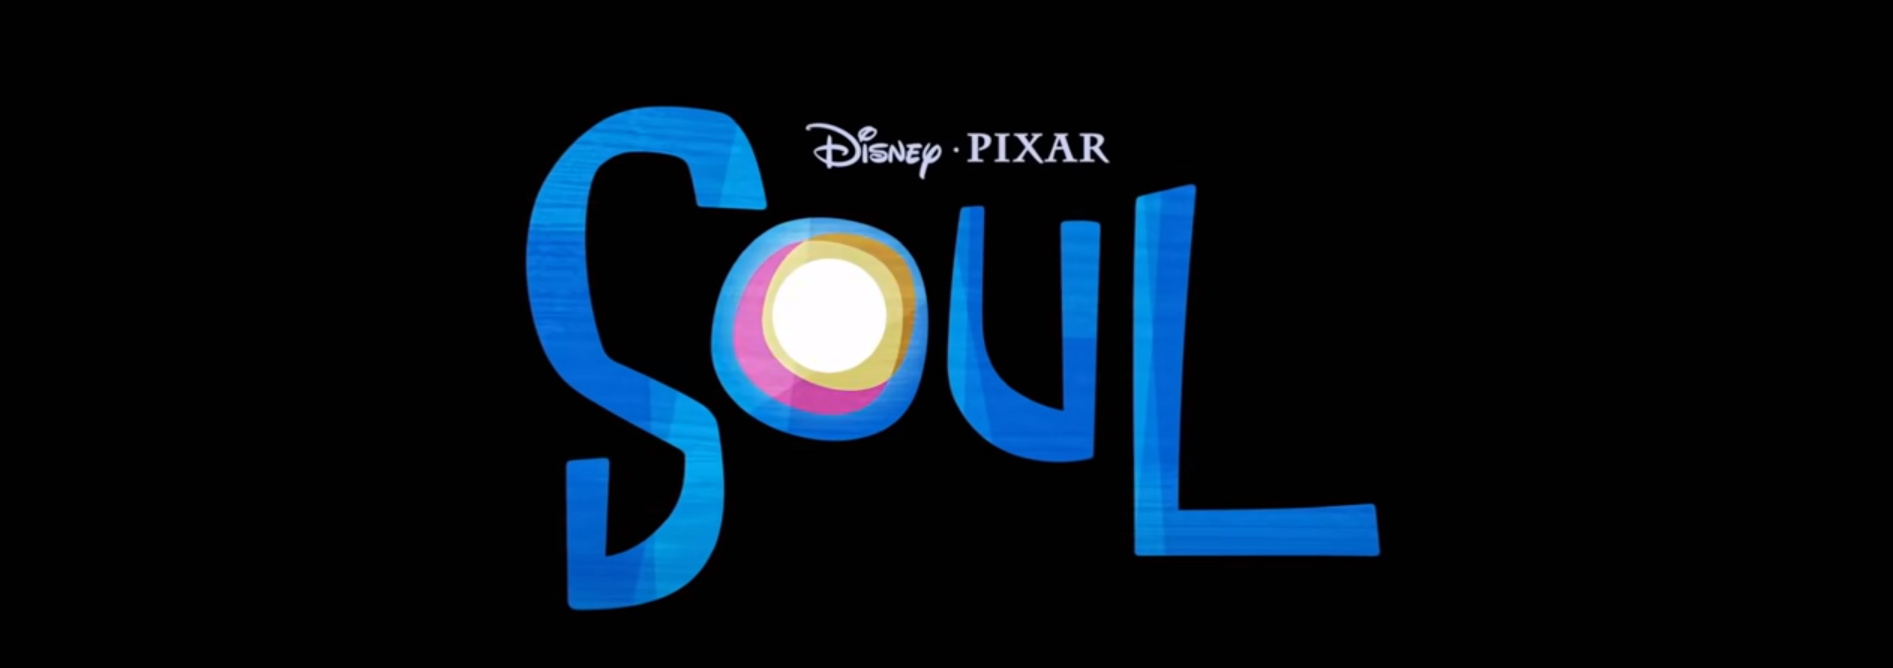 Soul from Pixar and Disney